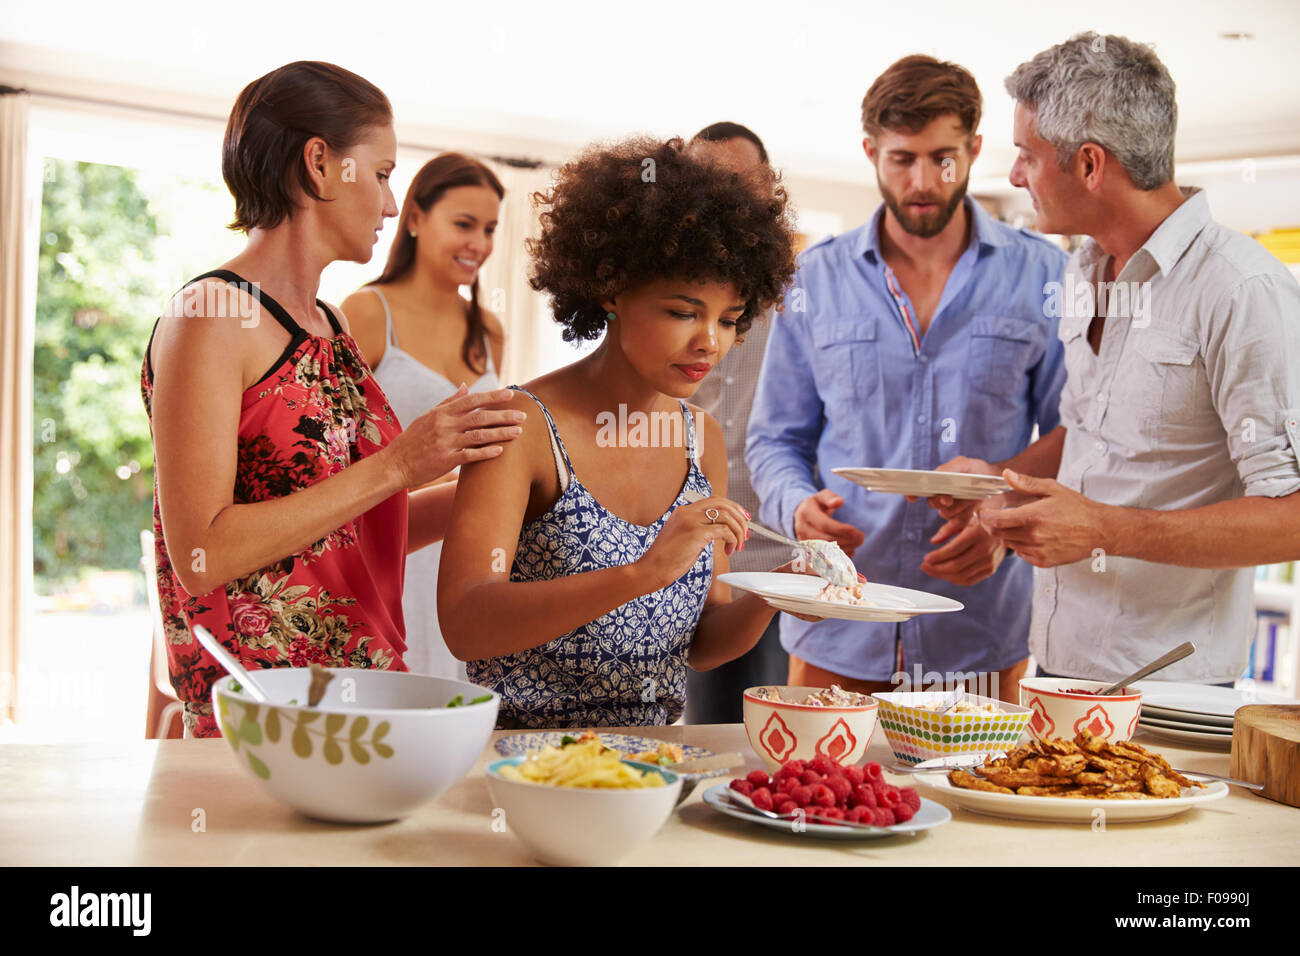 Friends serving themselves food and talking at dinner party - Stock Image